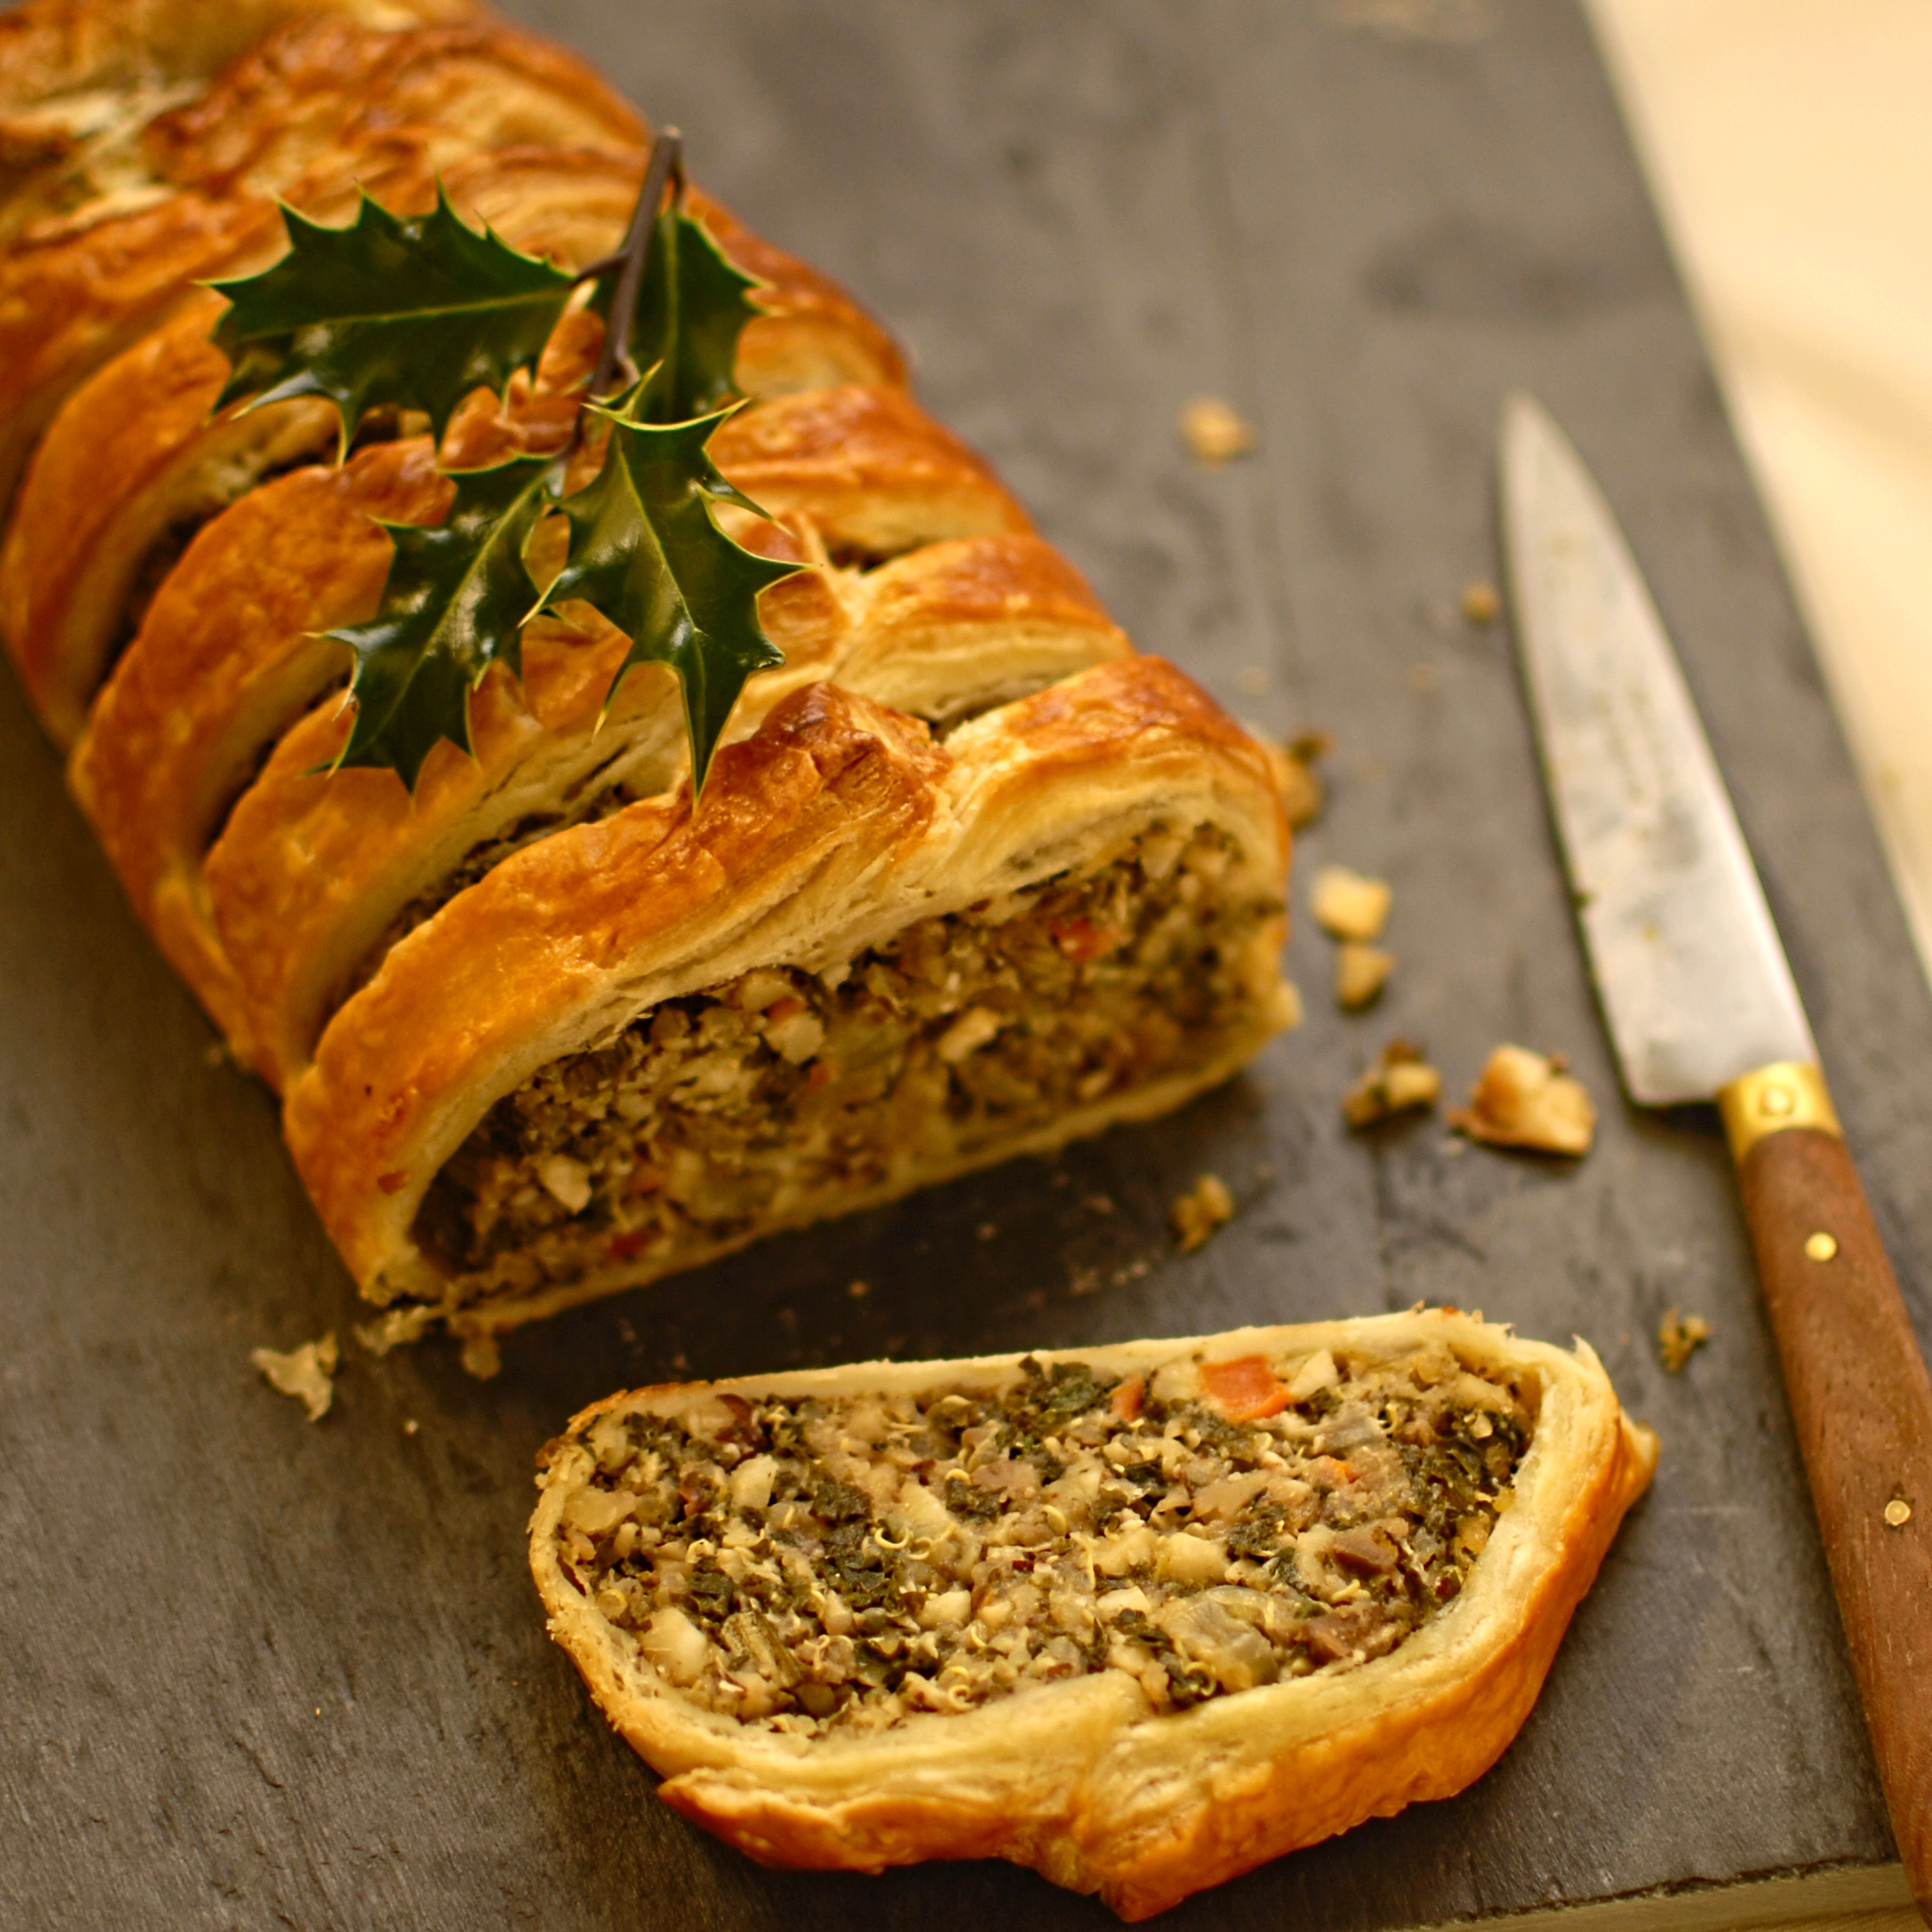 Kale quinoa and nut roast en croute the circus gardeners kitchen kale quinoa and nut roast en croute forumfinder Choice Image